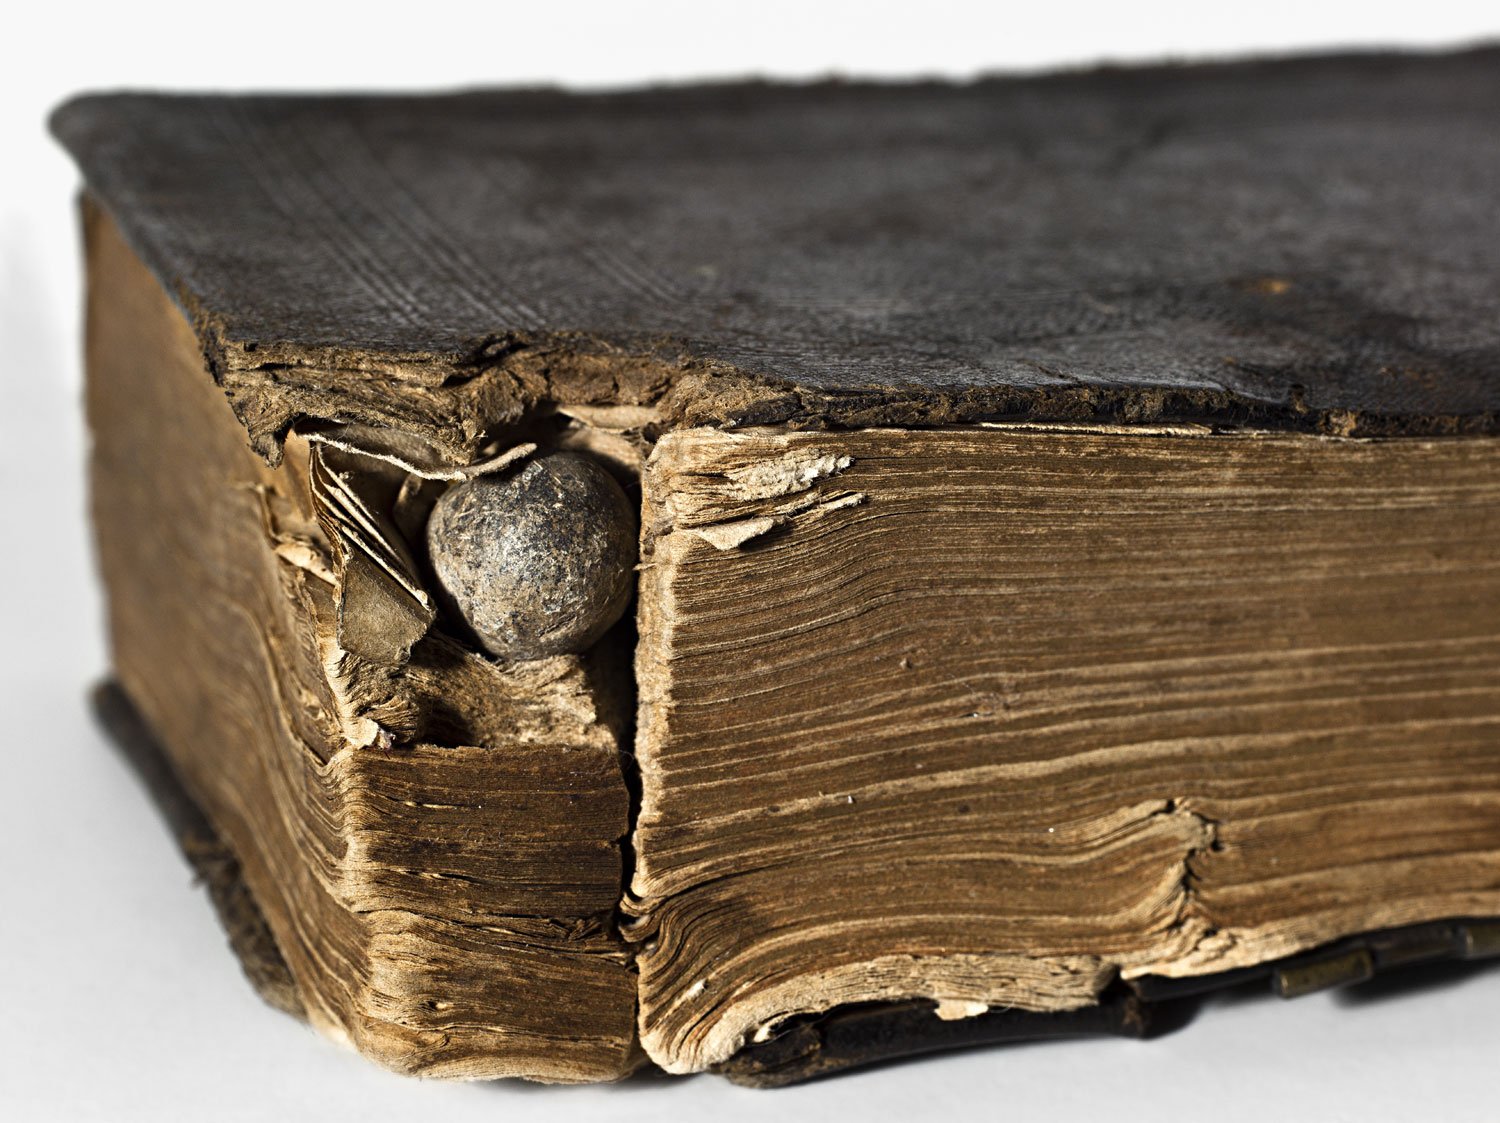 A musket ball lodged in the pages of a bible, which probably saved the life of the soldier who carried it.